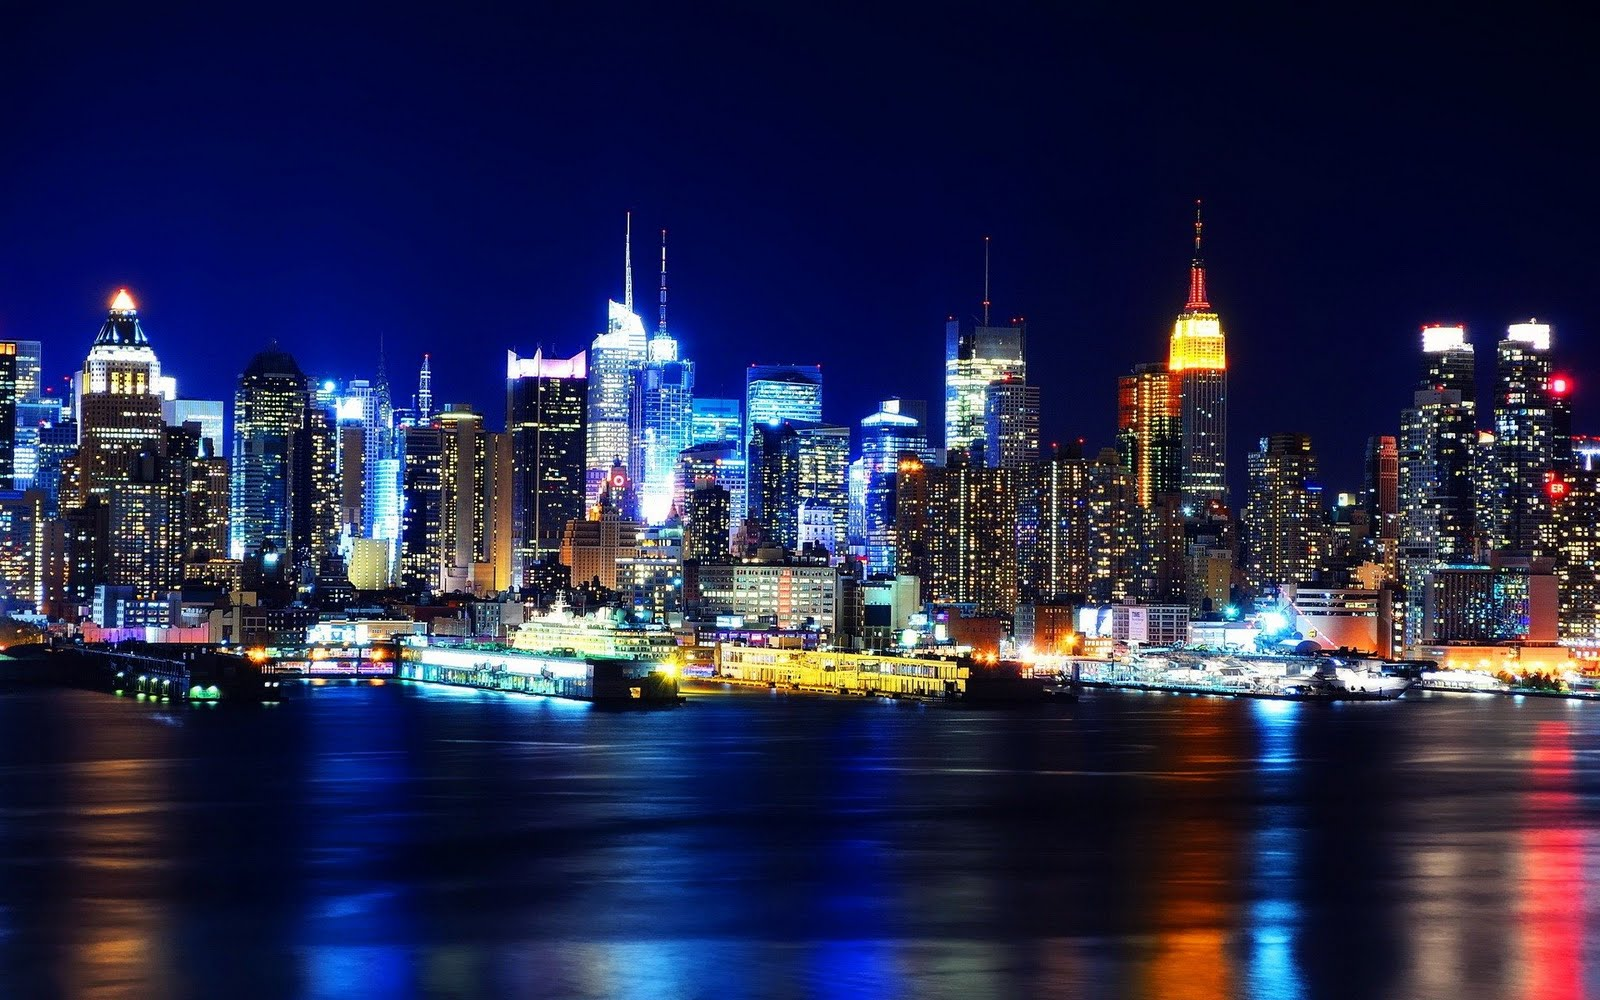 http://3.bp.blogspot.com/-vUdmwXjWdvc/TjKbUyXGmNI/AAAAAAAAAmA/6Egj0EU0qB8/s1600/new-york-night-wallpaper.jpg